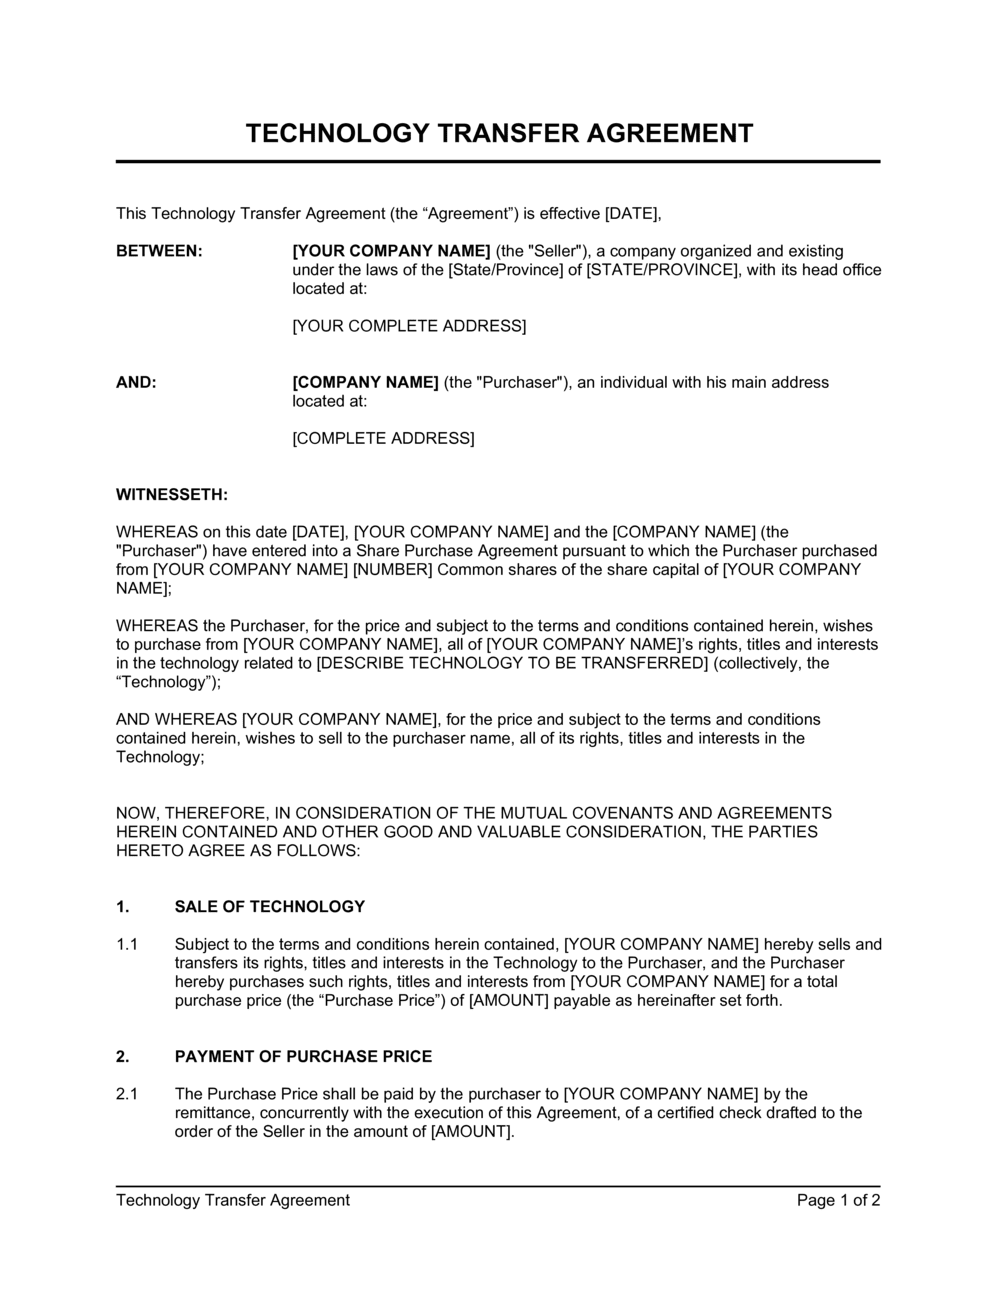 Business-in-a-Box's Technology Transfer Agreement Template